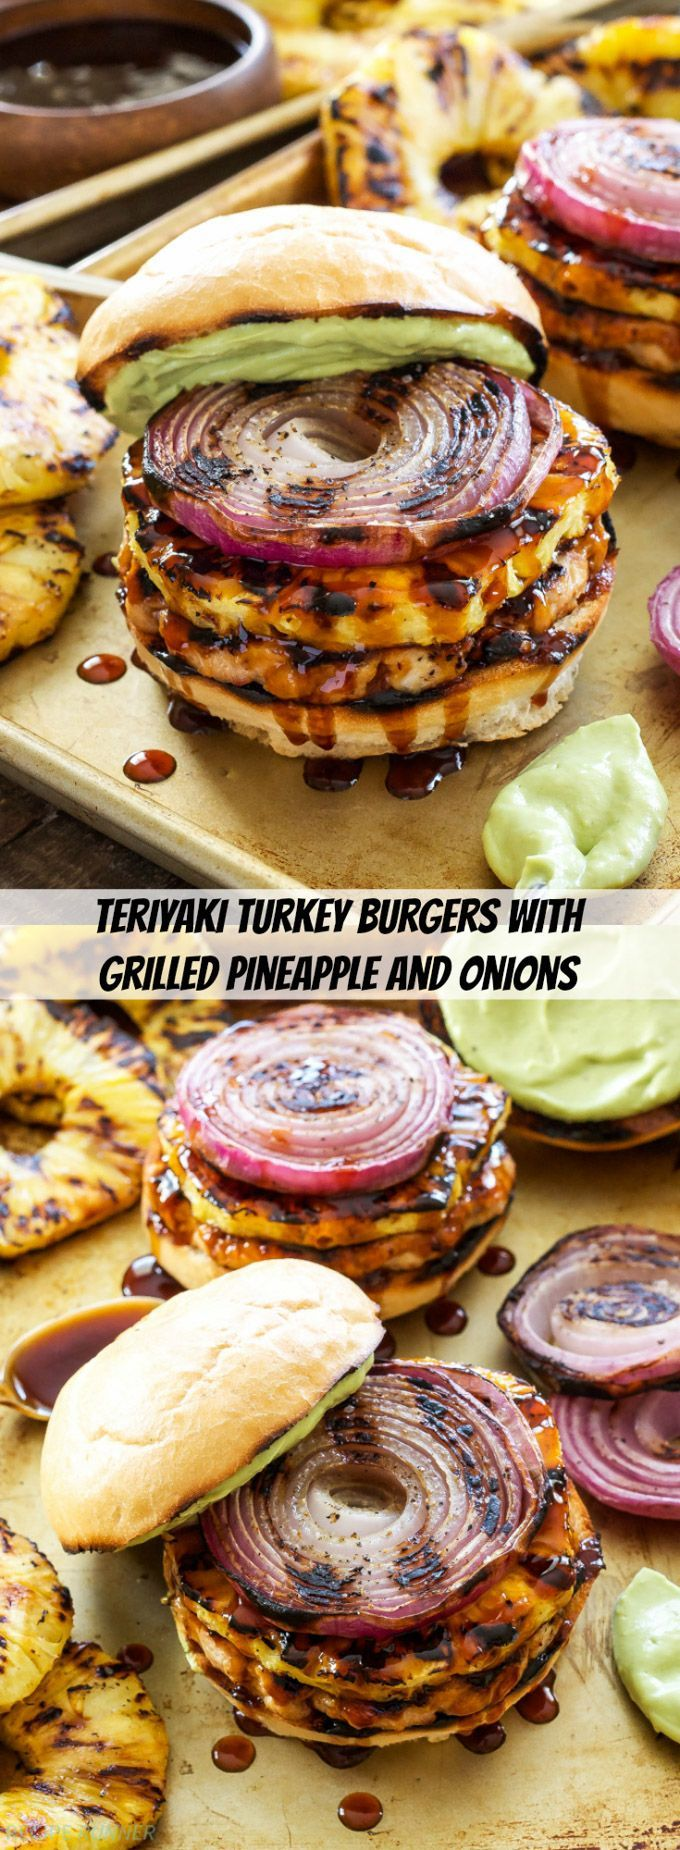 Teriyaki Turkey Burgers with Grilled Pineapple and Onions